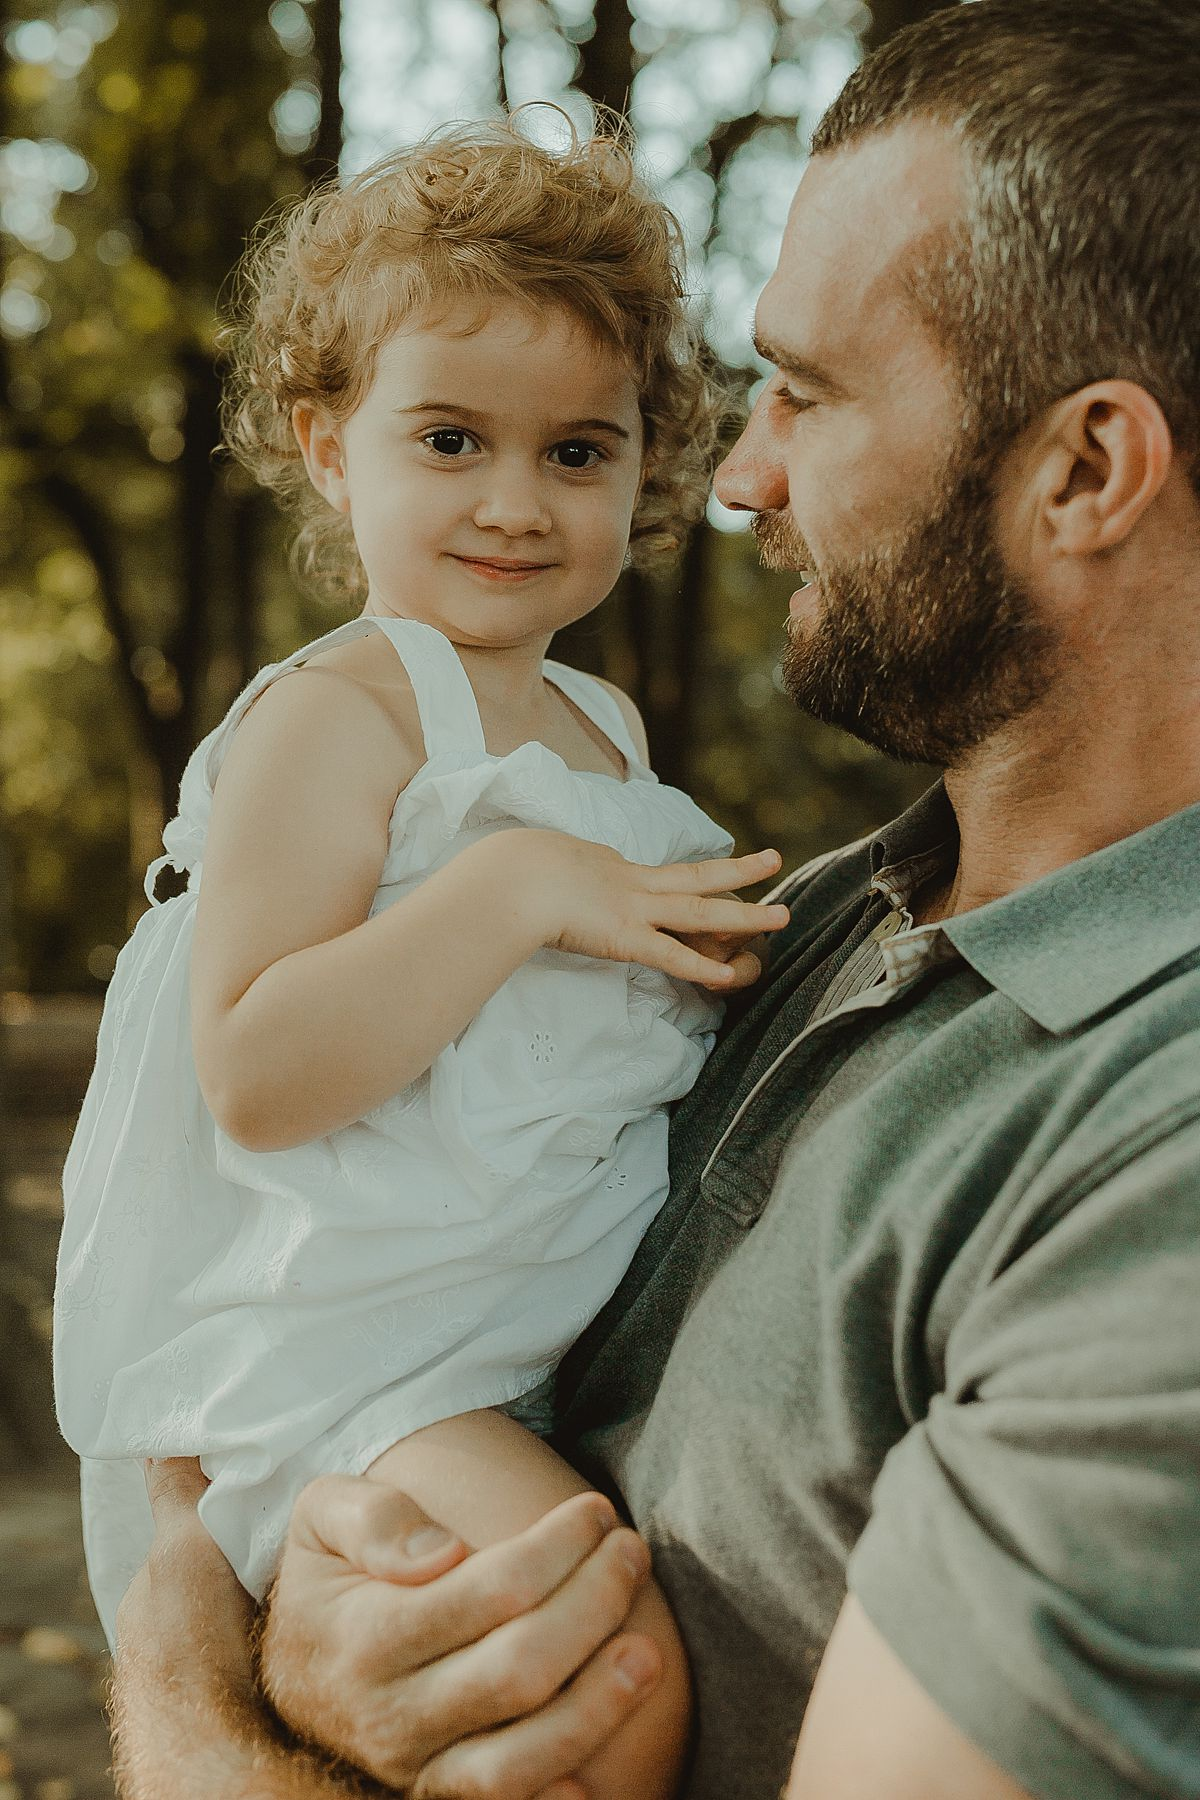 dad and daughter portrait in the park by nyc family photographer krystil mcdowall